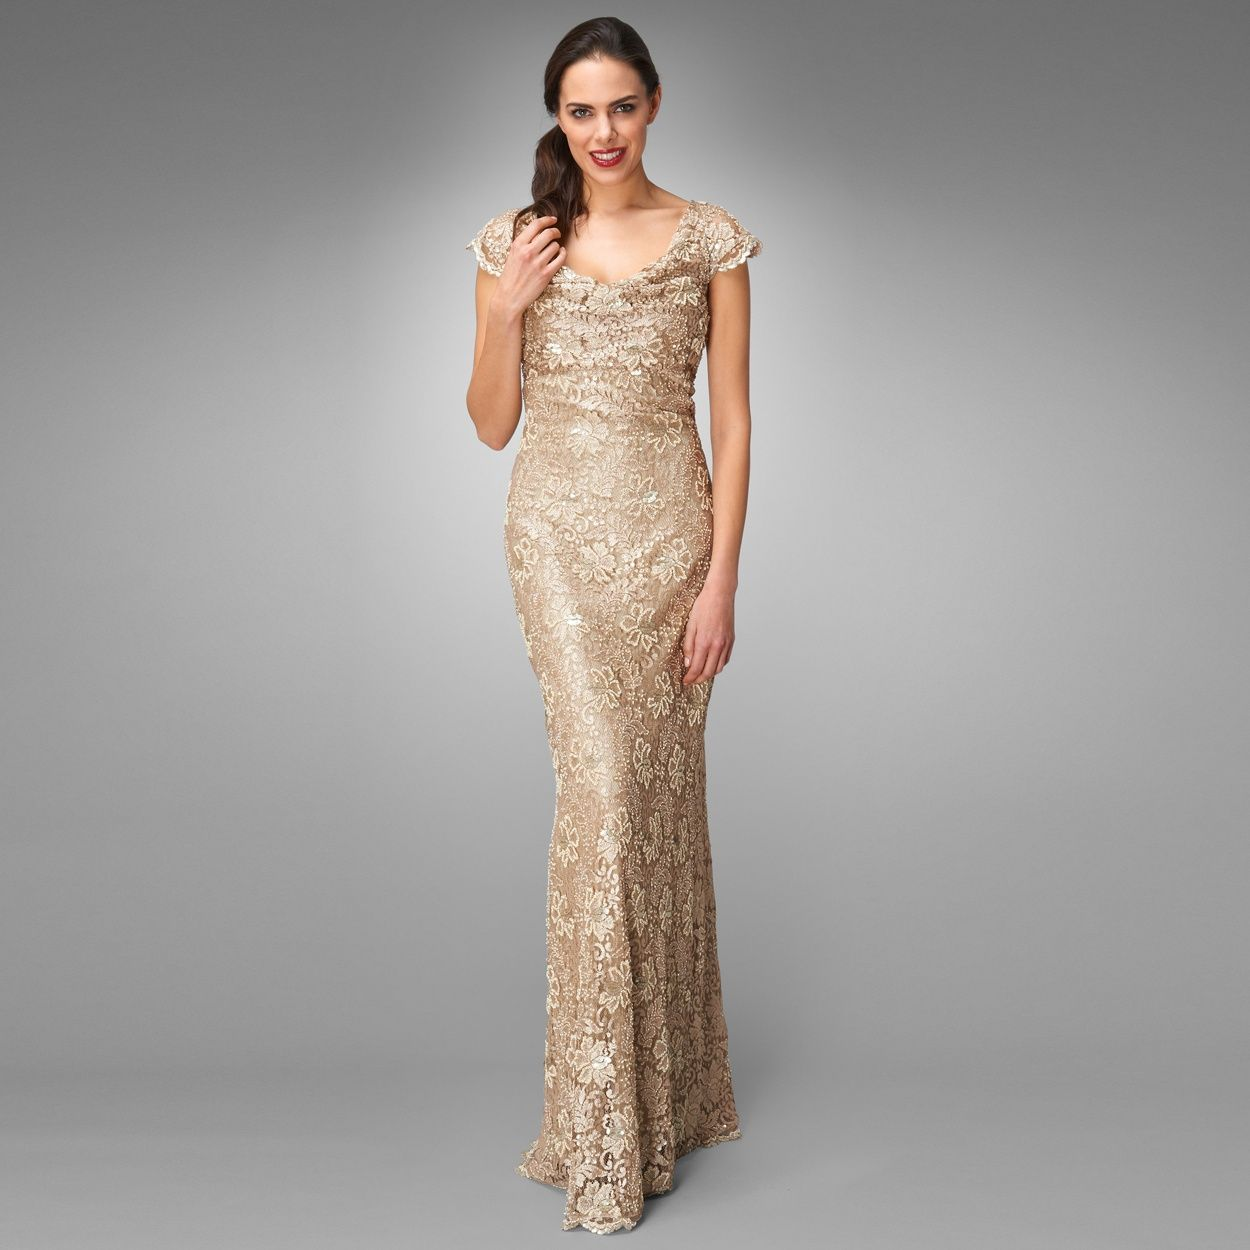 Phase eight gold pippa embellished lace dress at debenhams phase eight gold pippa embellished lace dress at debenhams gold bridesmaid dressesgold bridesmaidswedding ombrellifo Gallery